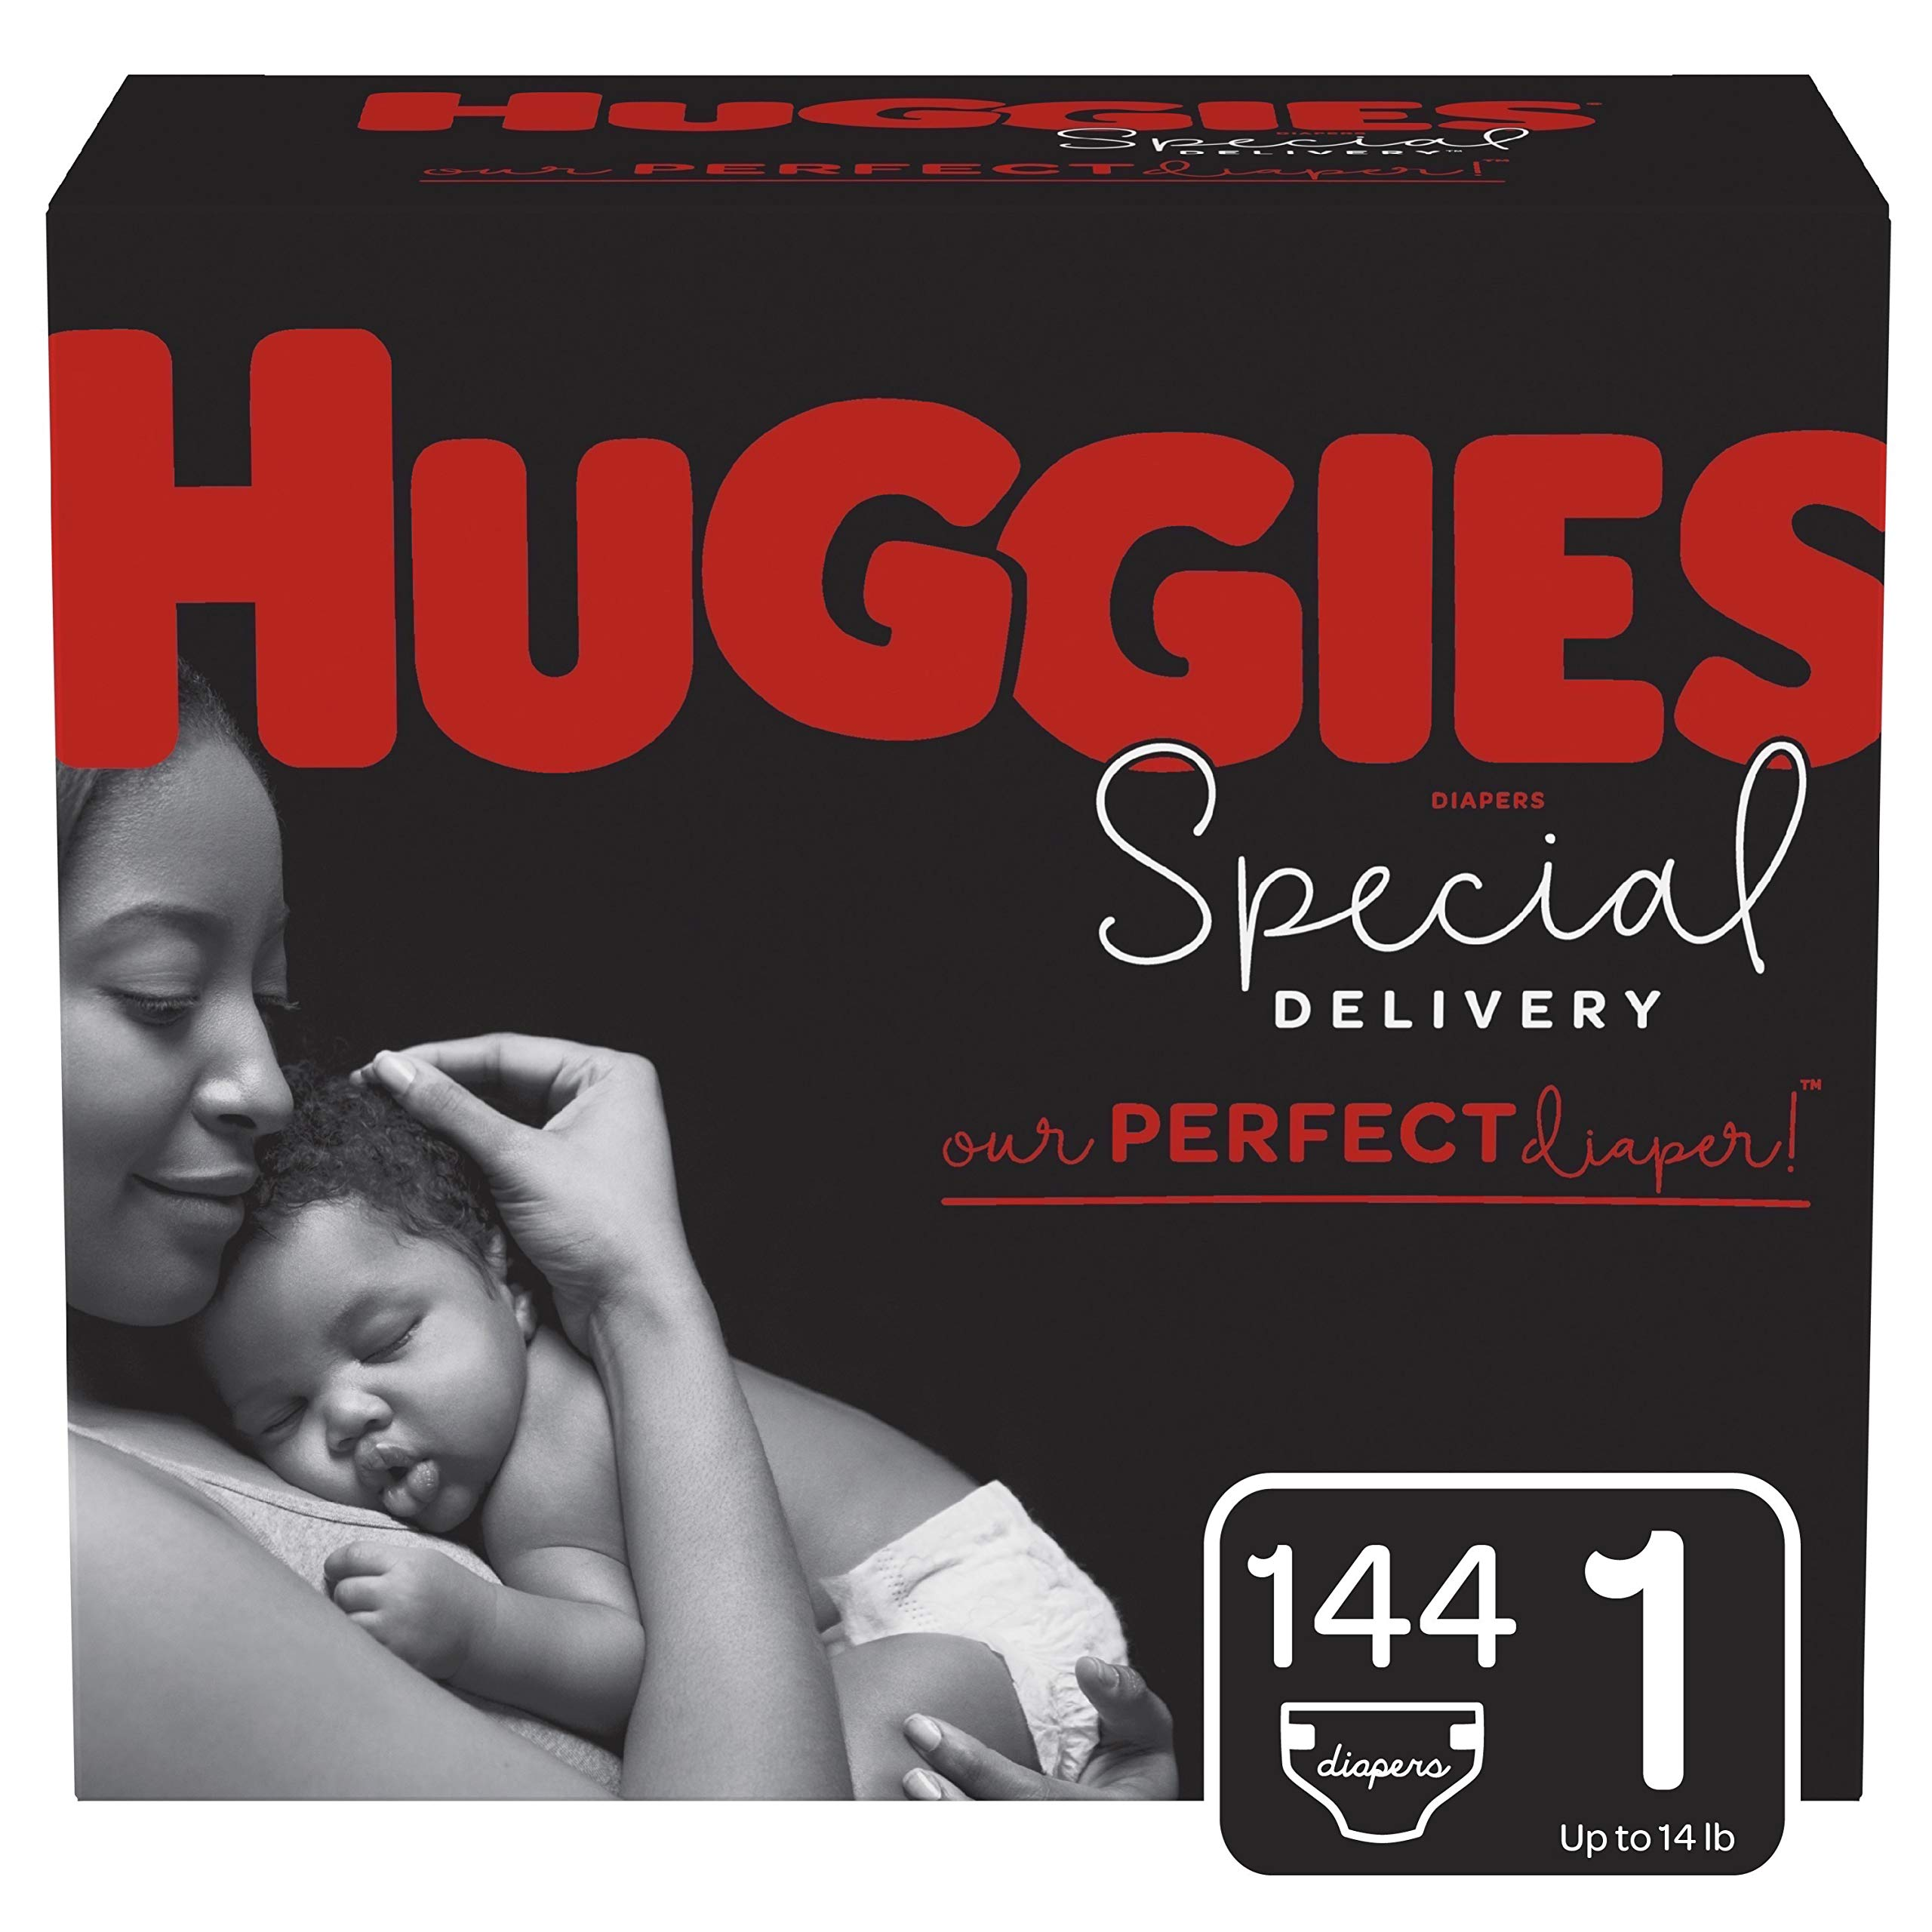 Huggies Special Delivery Hypoallergenic Baby Diapers, Size 6 (35+ lbs.), 36 Count, Giga Jr. Pack